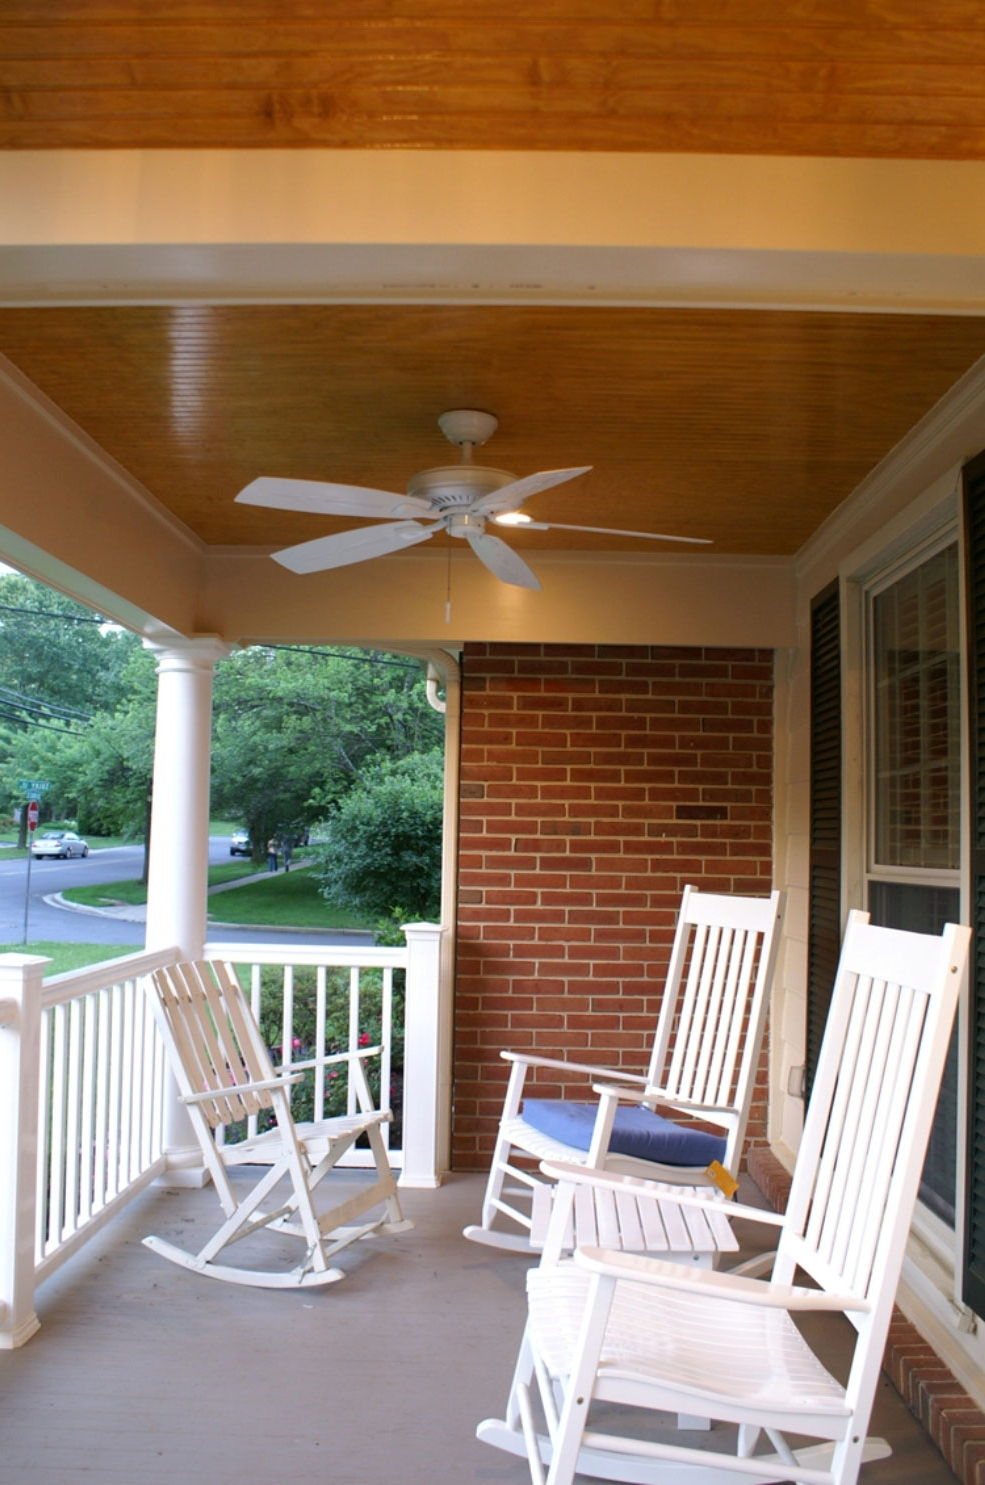 Outdoor Ceiling Fans For Porch Intended For Most Current Ceiling: Glamorous Outdoor Ceiling Fans Without Lights Lowes Ceiling (View 14 of 20)